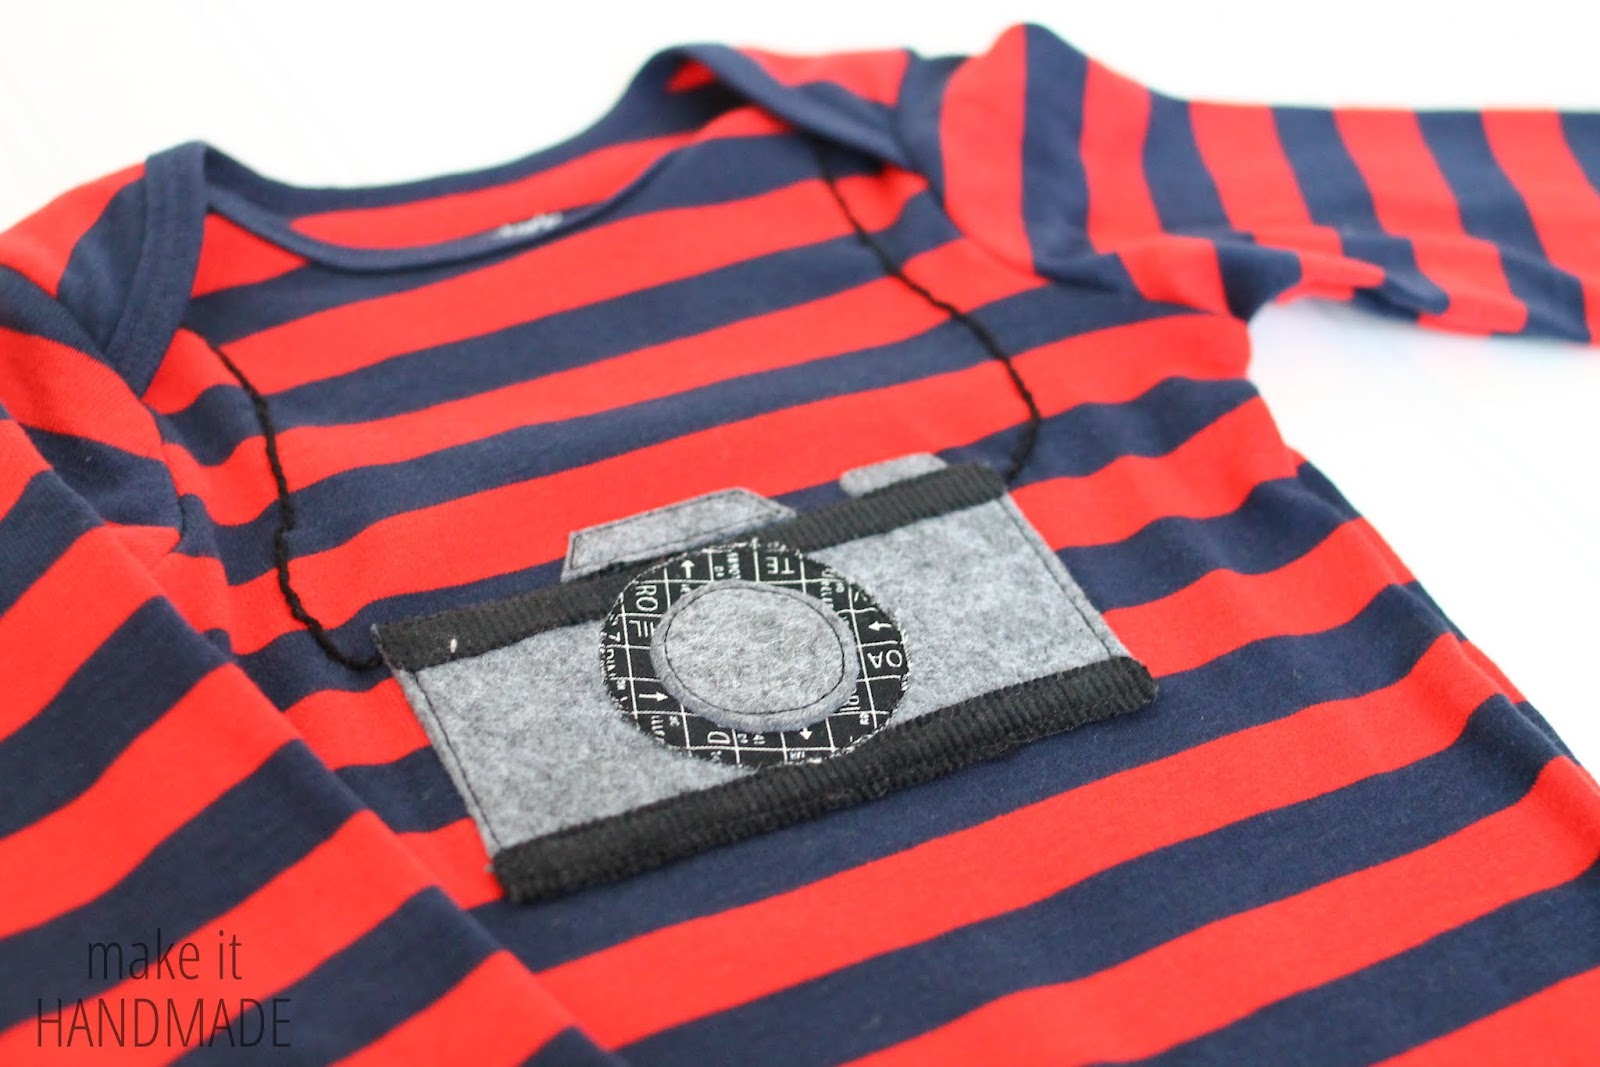 A few tips and resources on appliqueing store bought onsies. Makes for a cute baby gift!